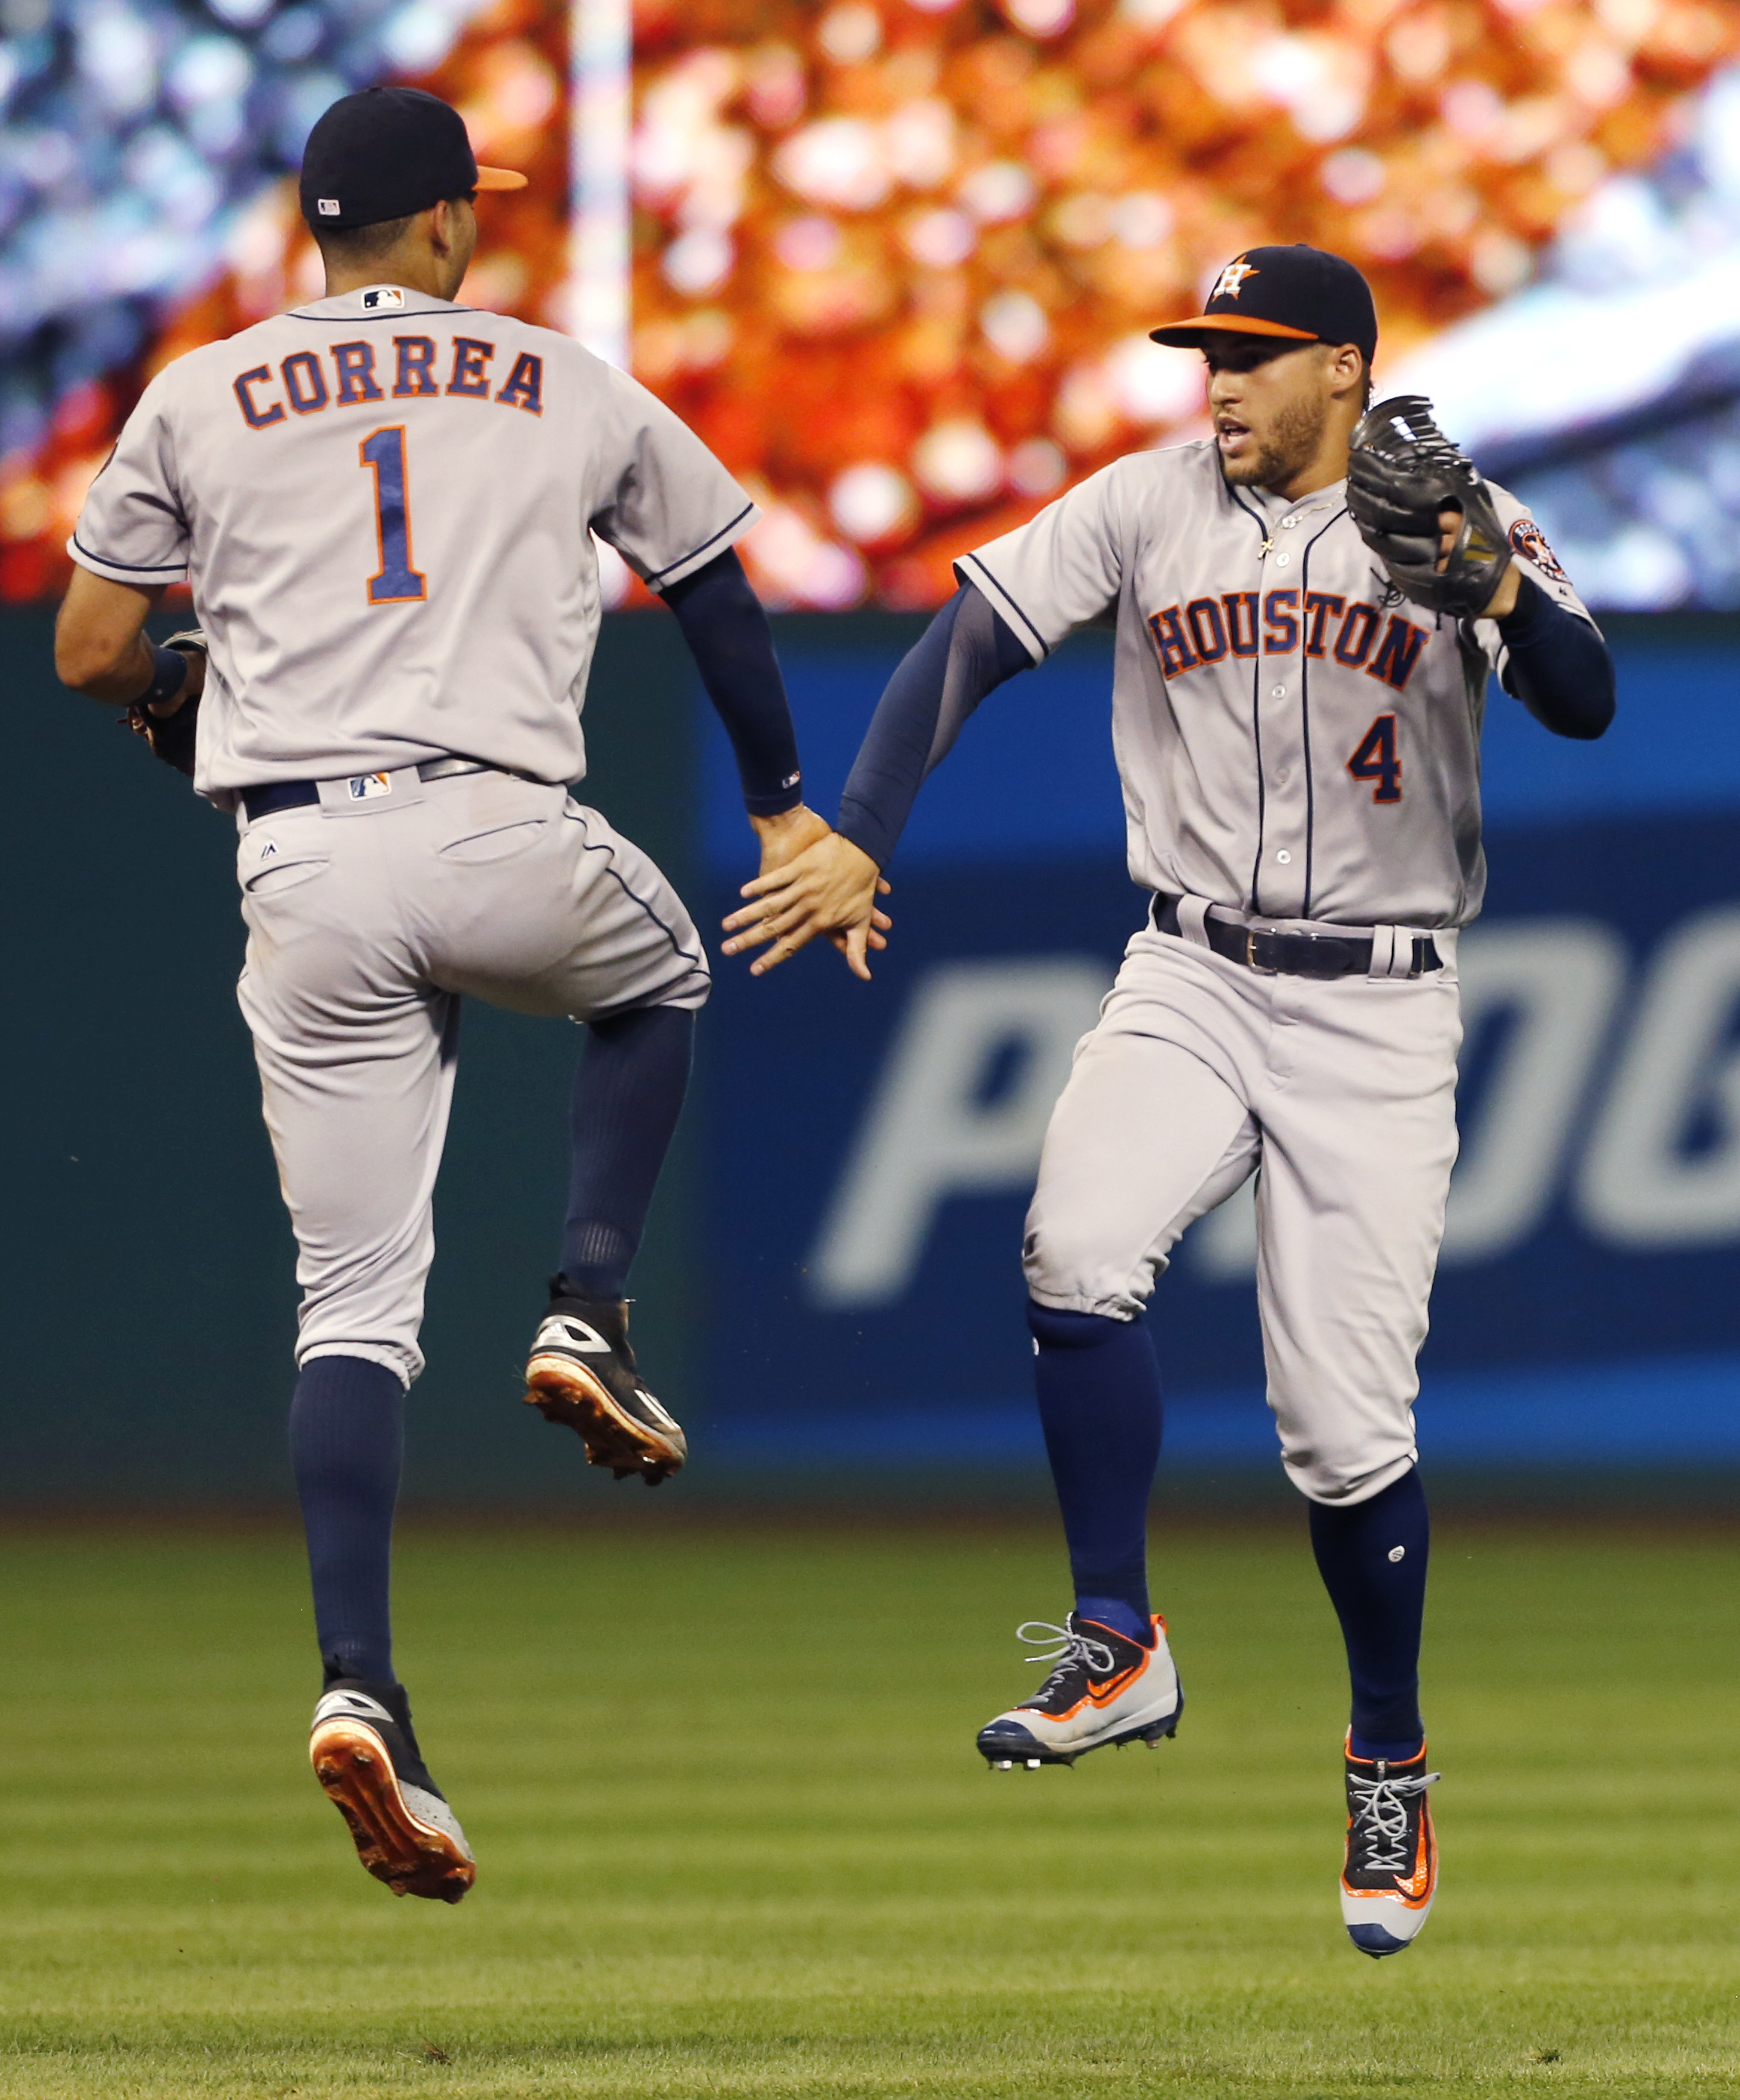 Houston Astros' George Springer (4) and Carlos Correa (1) celebrate the team's 4-3 win over the Cleveland Indians in a baseball game Tuesday, Sept. 6, 2016, in Cleveland. (AP Photo/Ron Schwane)